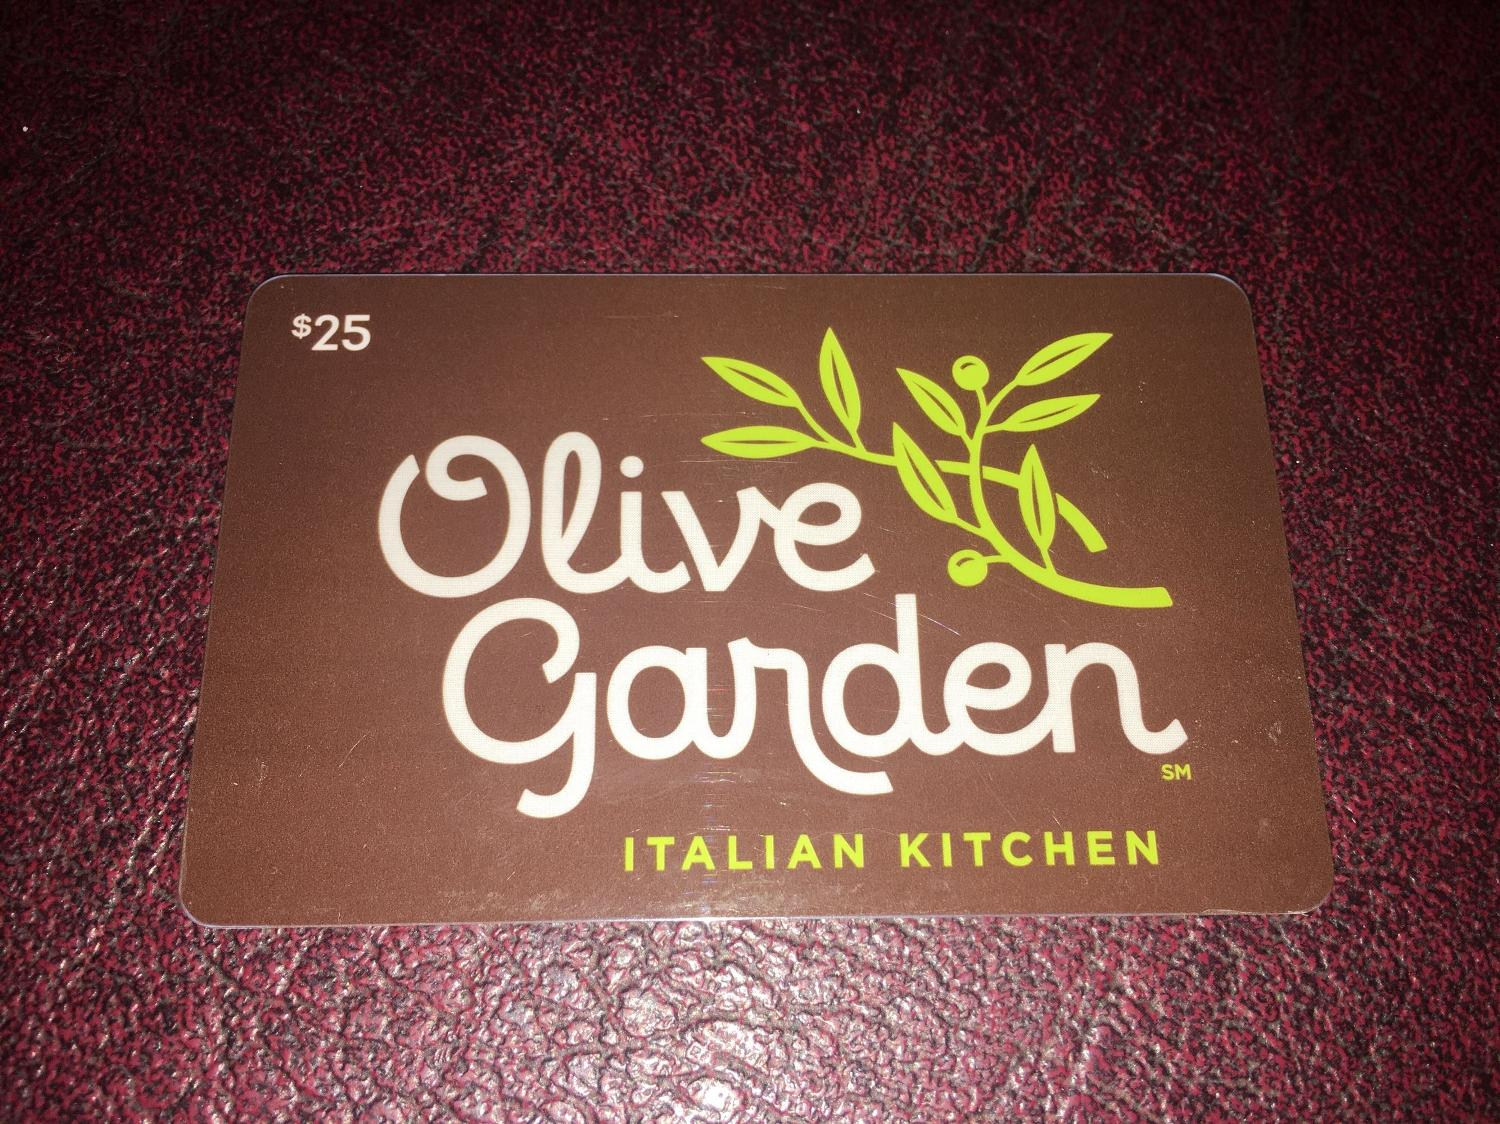 Find more olive garden gift card never used for sale at up - Olive garden gift card balance check ...